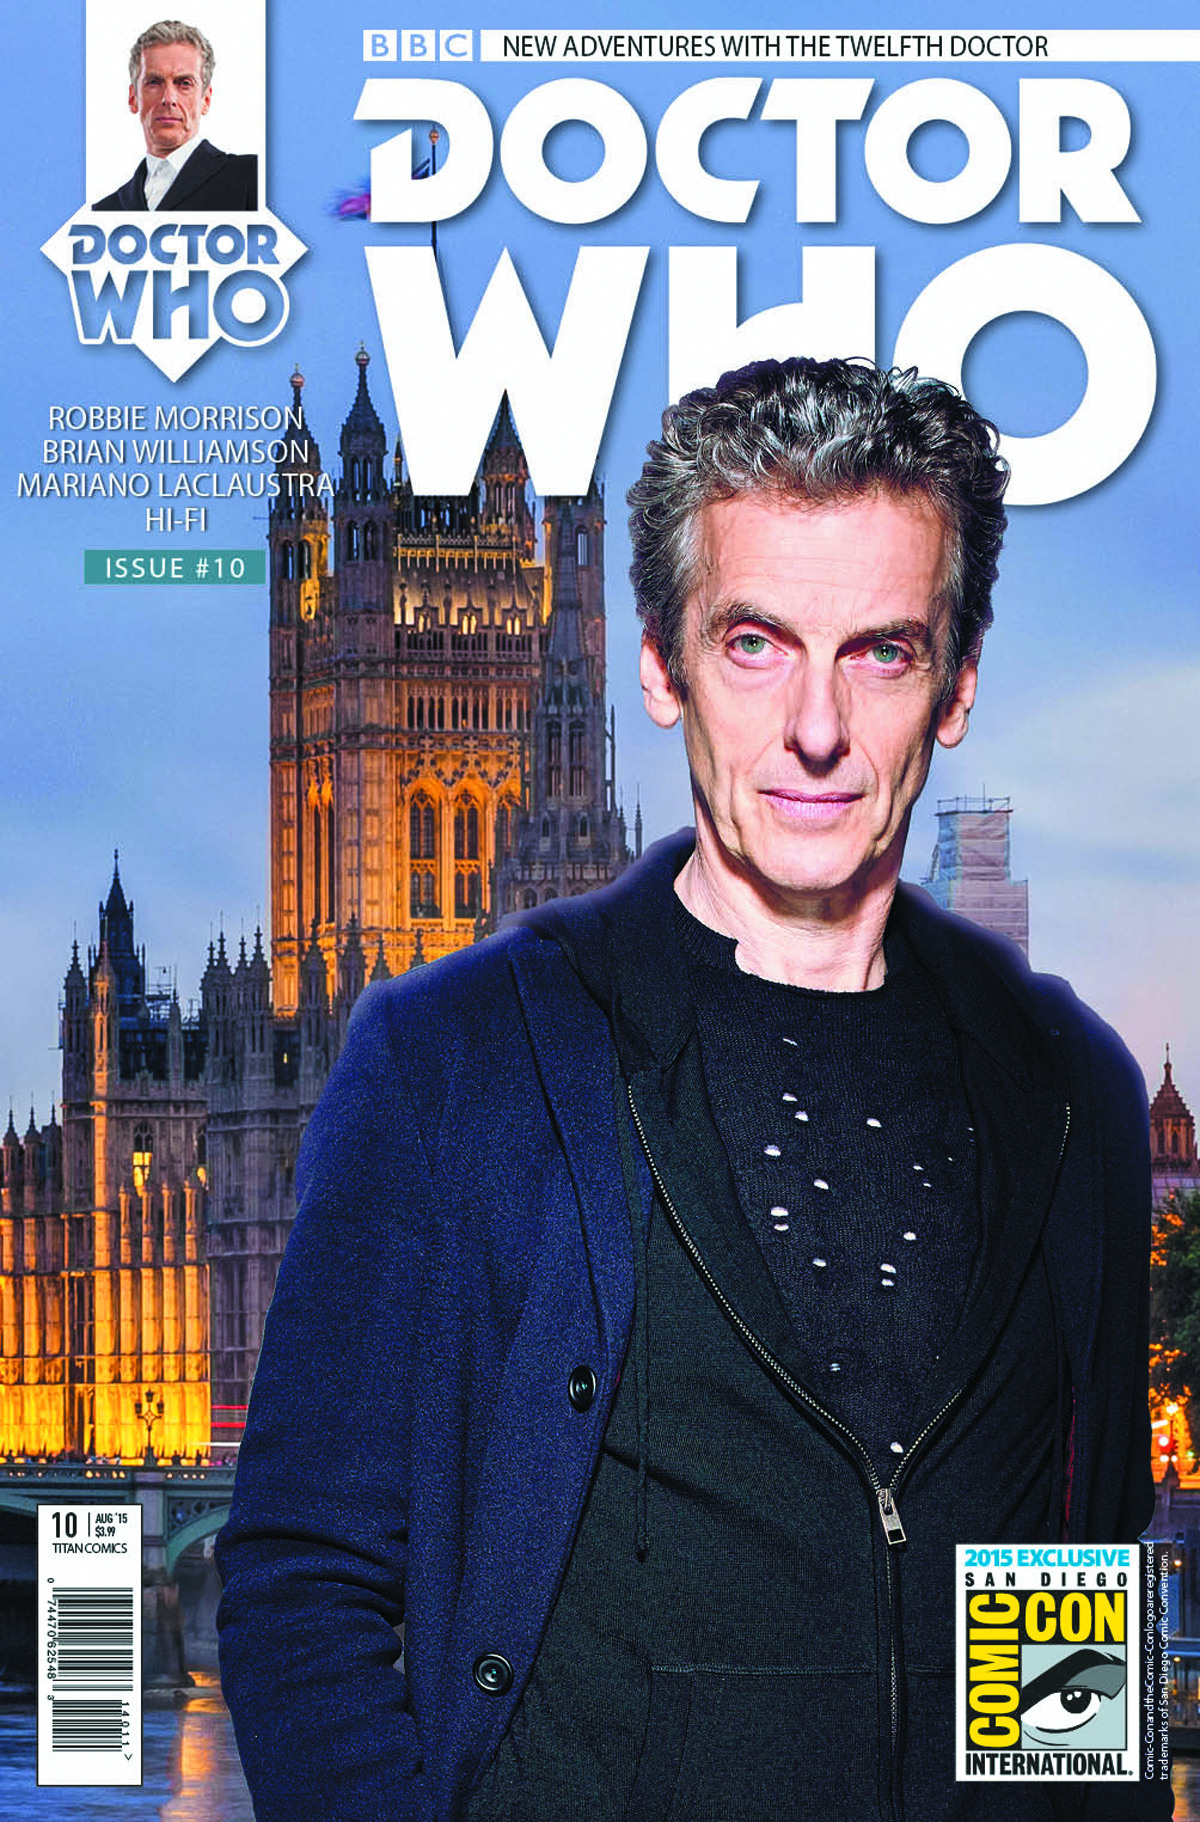 DOCTOR WHO 12TH #10 SDCC VAR